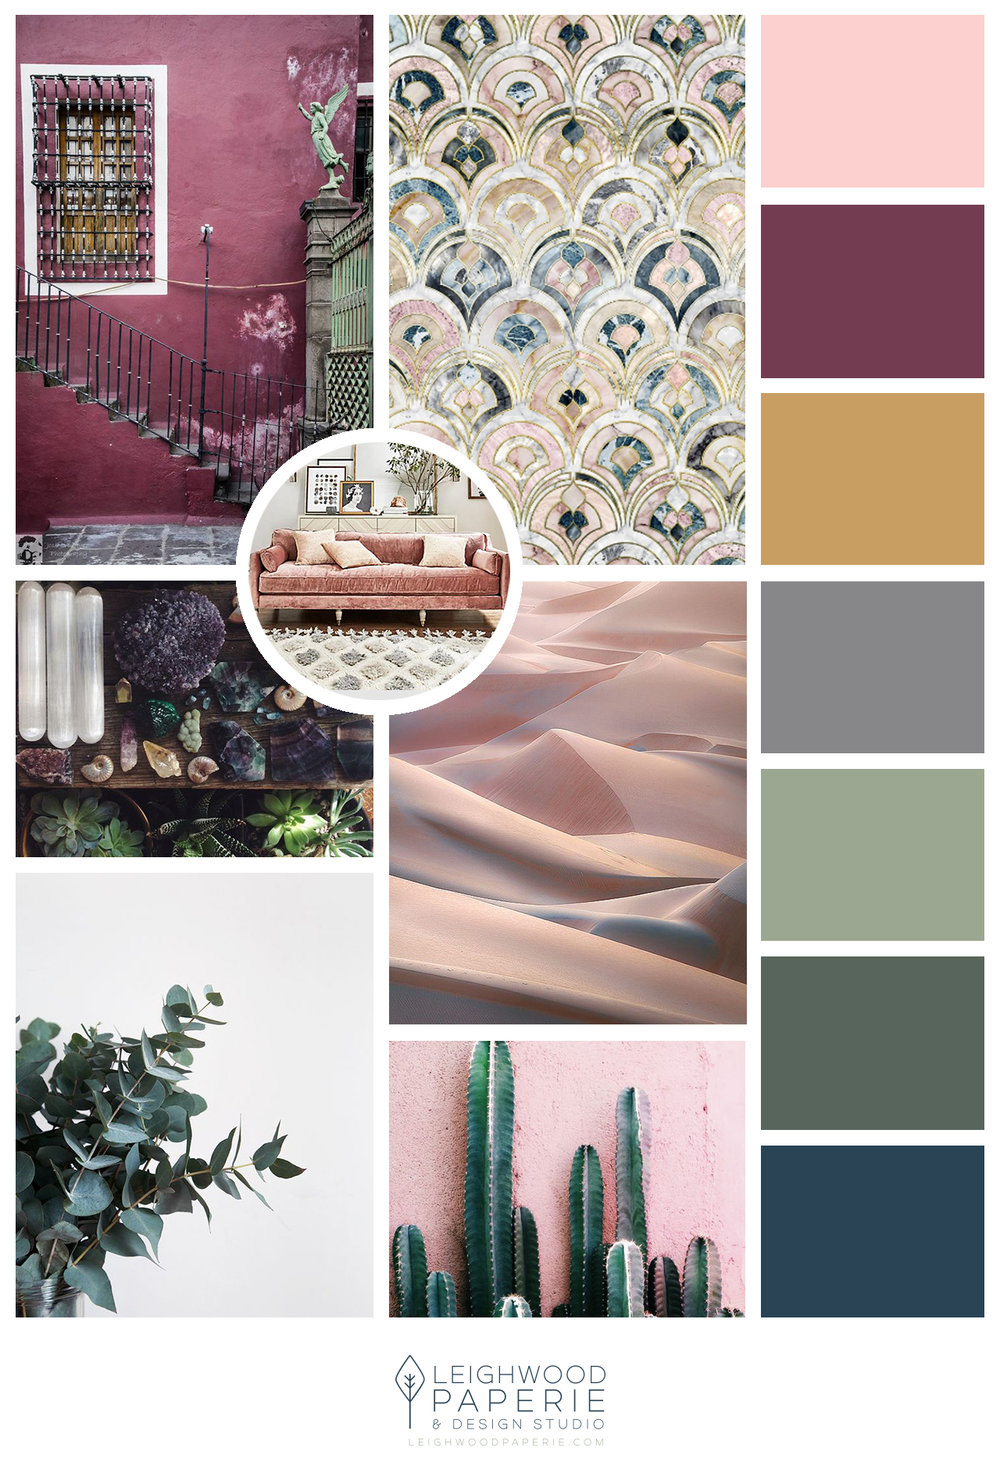 Mood board for Leighwood Paperie